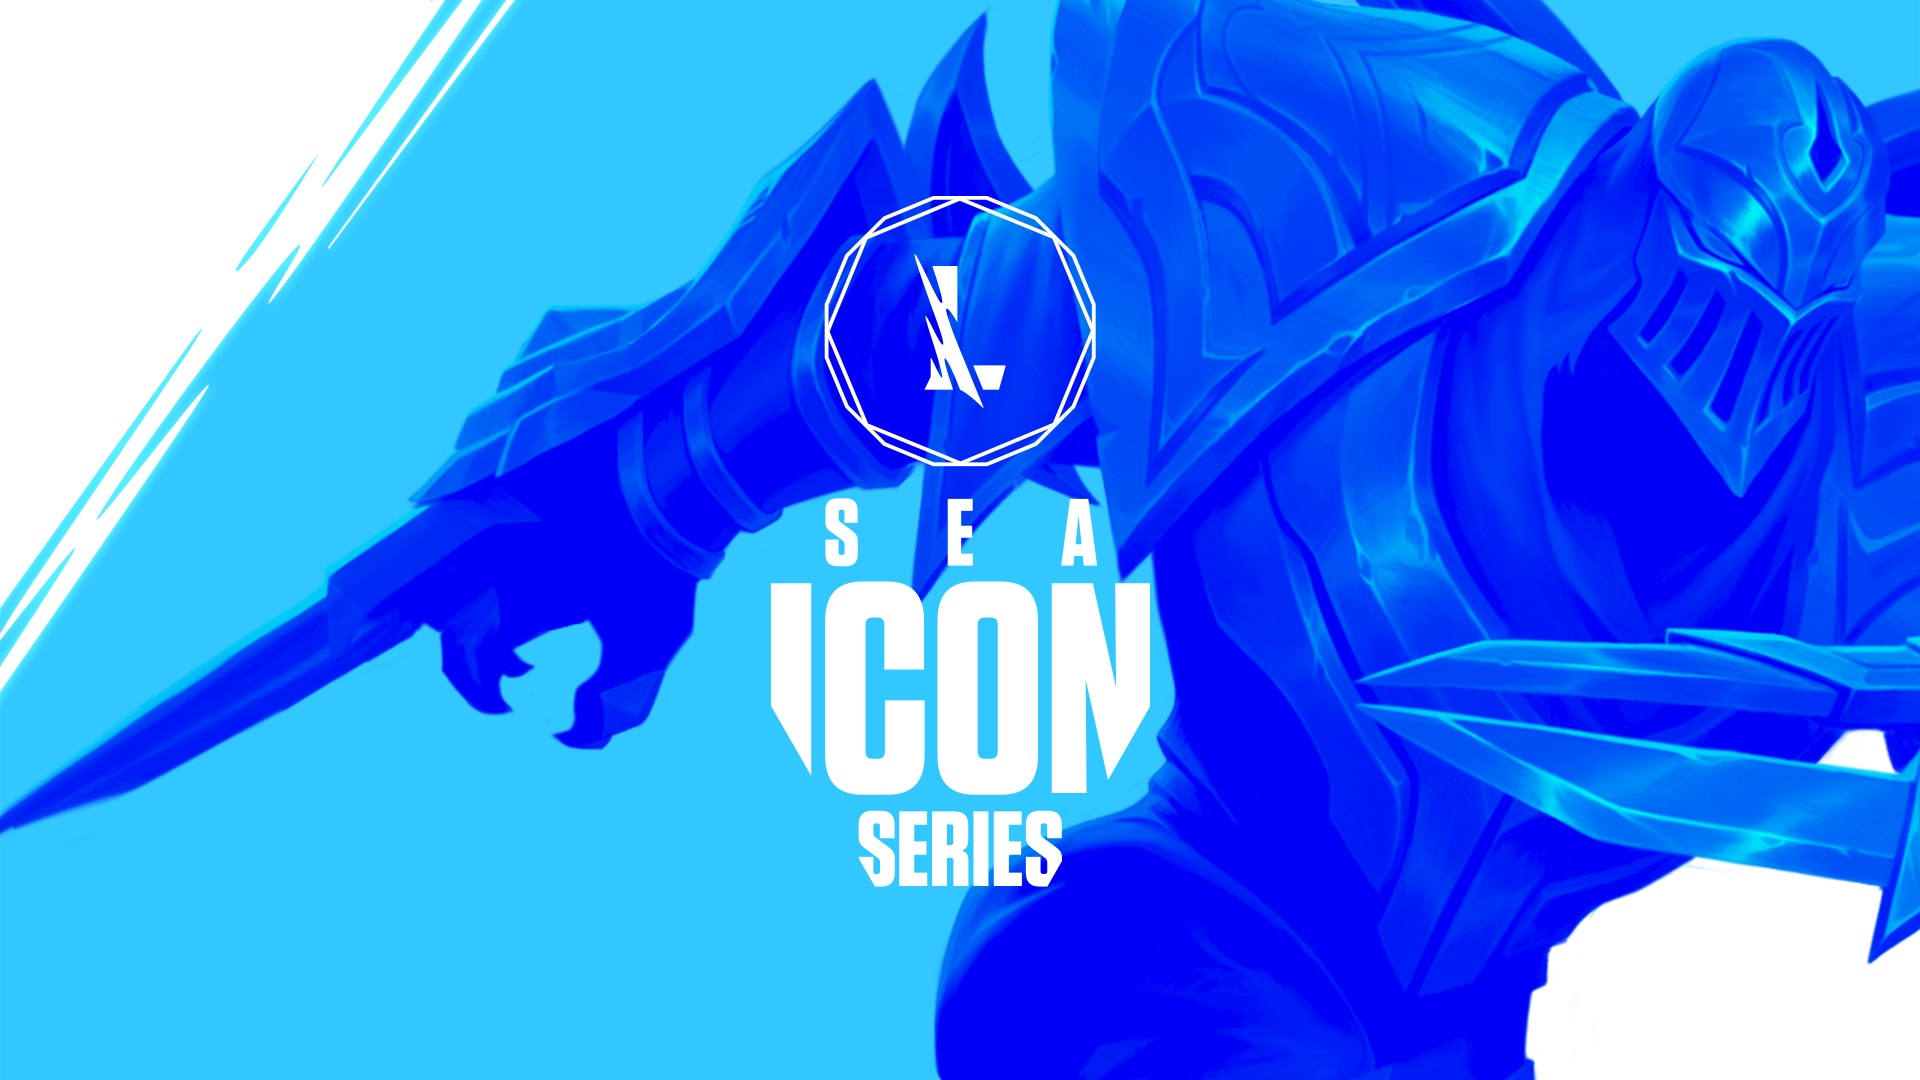 TEAMS ANNOUNCED FOR THE 2021 LEAGUE OF LEGENDS: WILD RIFT SOUTHEAST ASIA ICON SERIES: PRESEASON